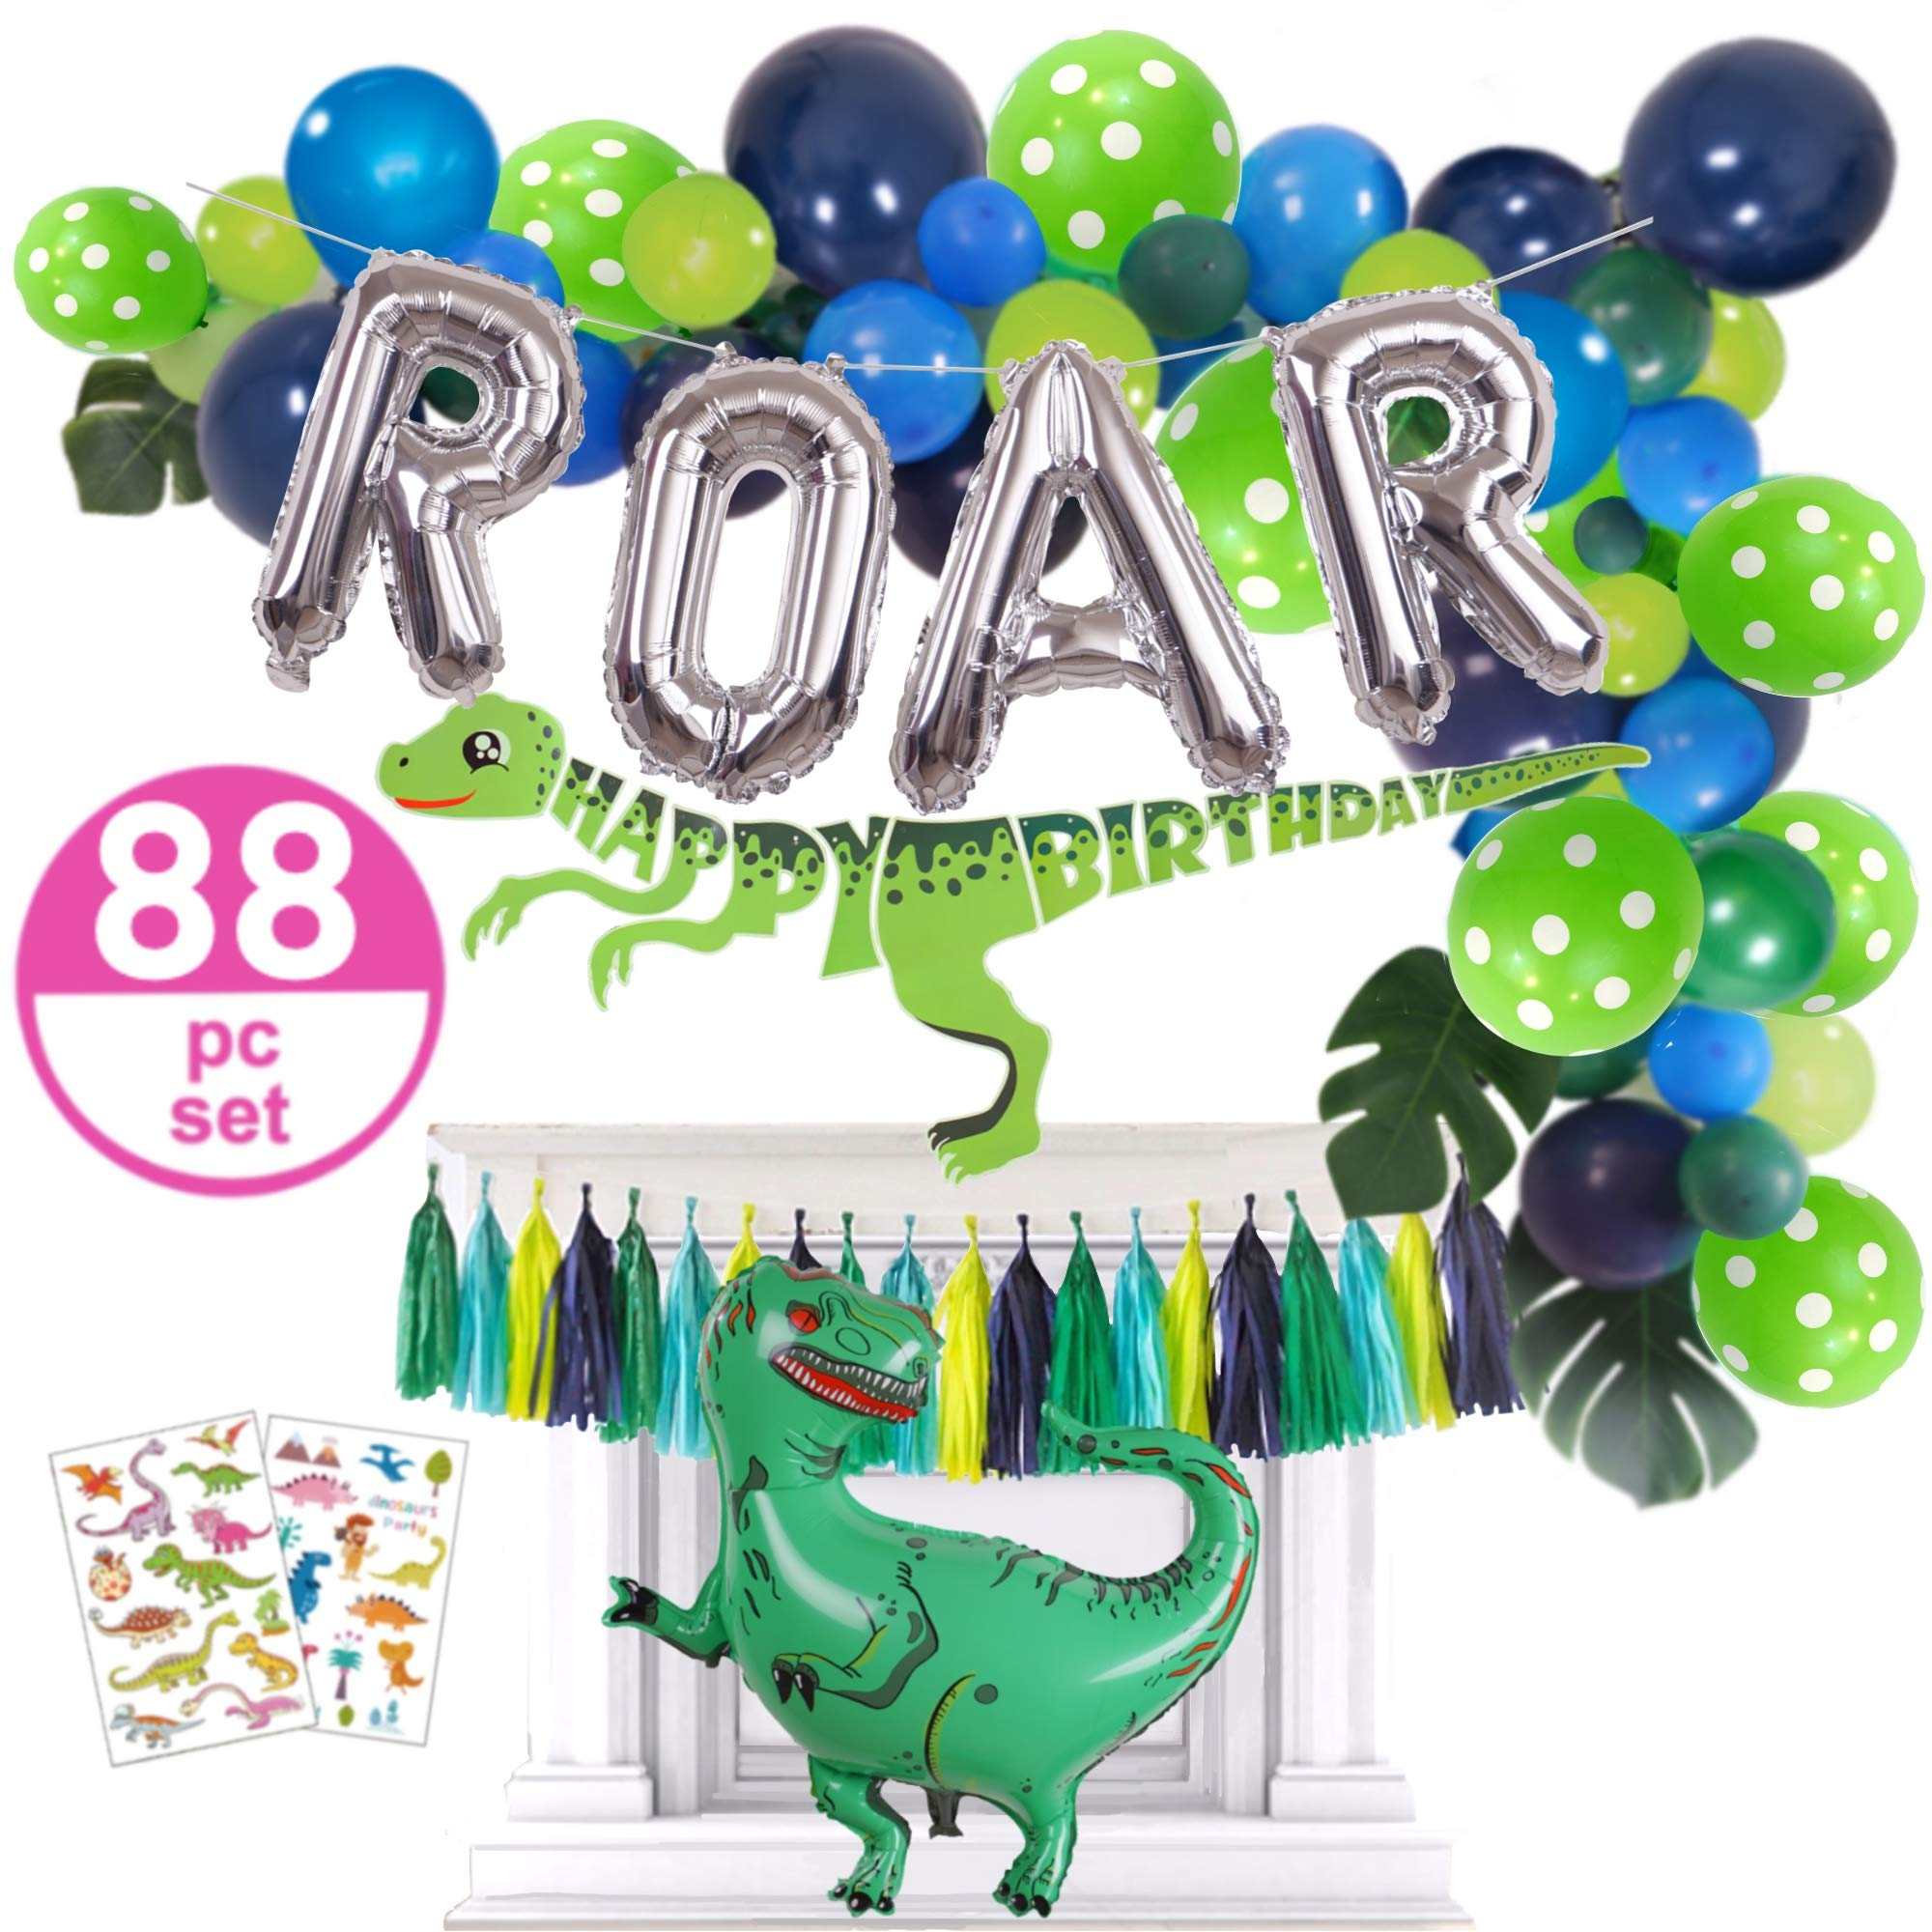 Dinosaur Party Supplies - 88pc Dinosaur Party Decorations Set for Boys Toddlers - Jungle Theme Balloon Garland, Blow Up T Rex & ROAR, Happy Birthday Banner by Emuya